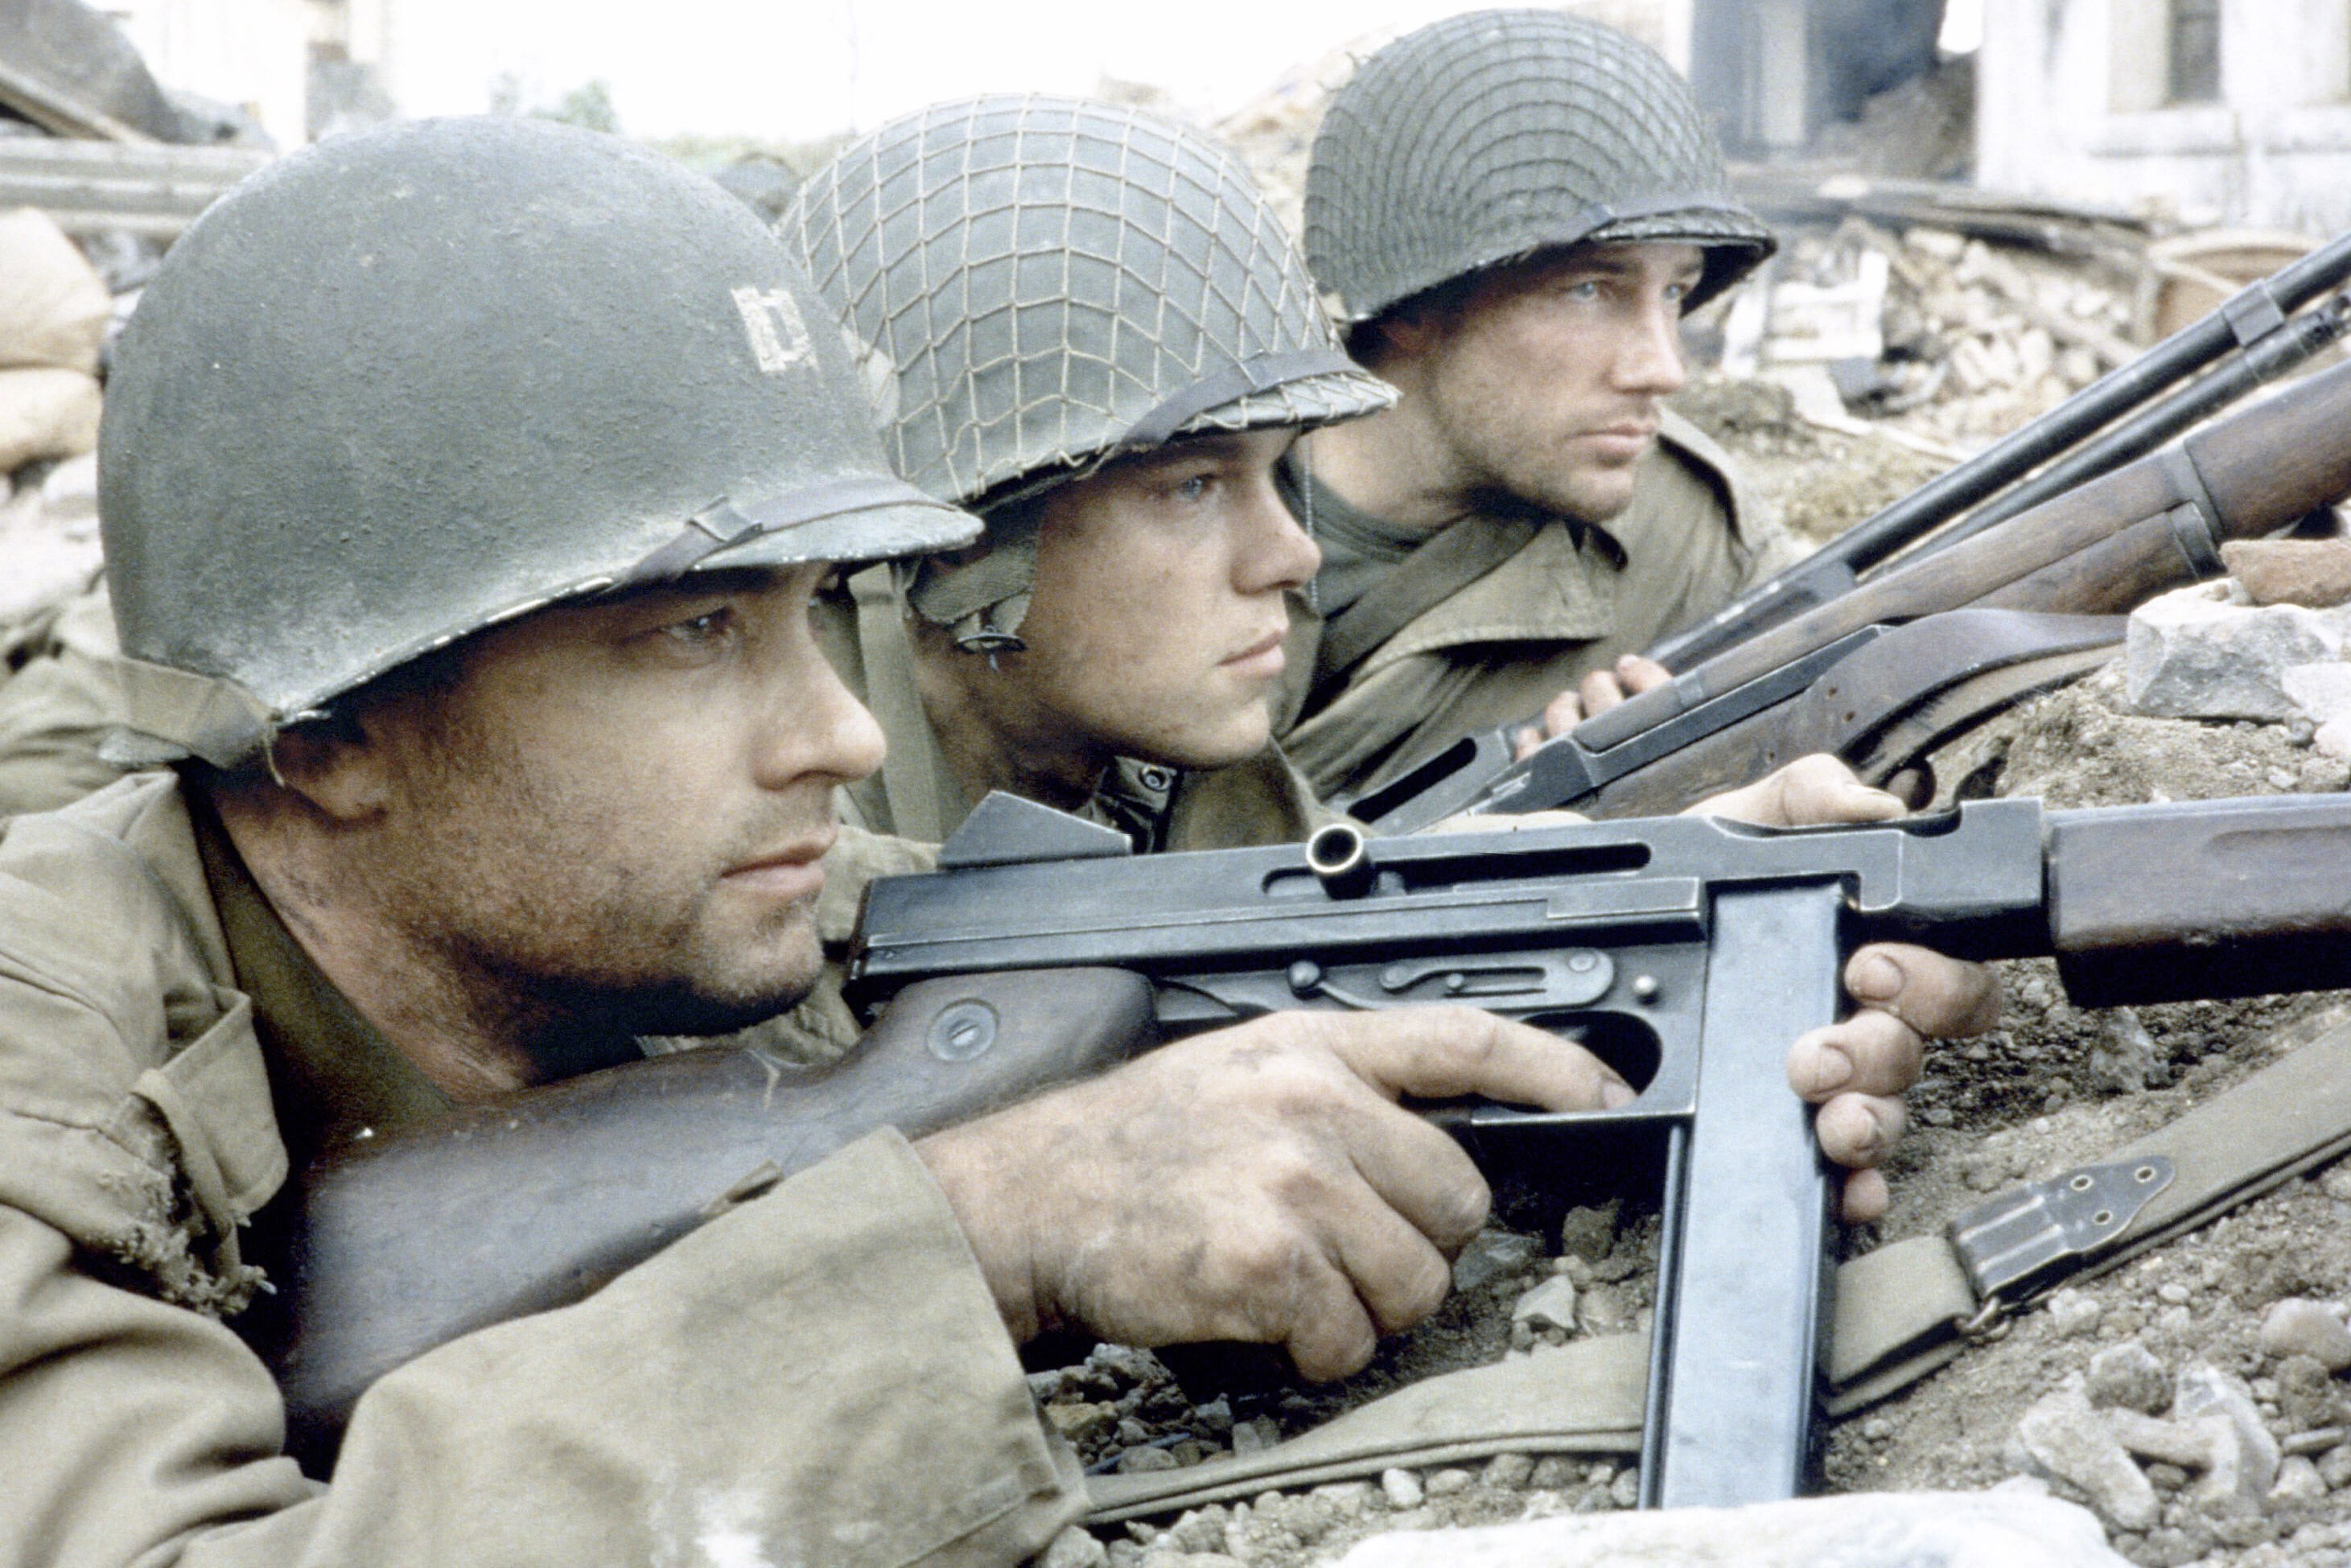 Saving Private Ryan Returns to Cinemas this June to Mark 75th Anniversary of The D-Day Landings